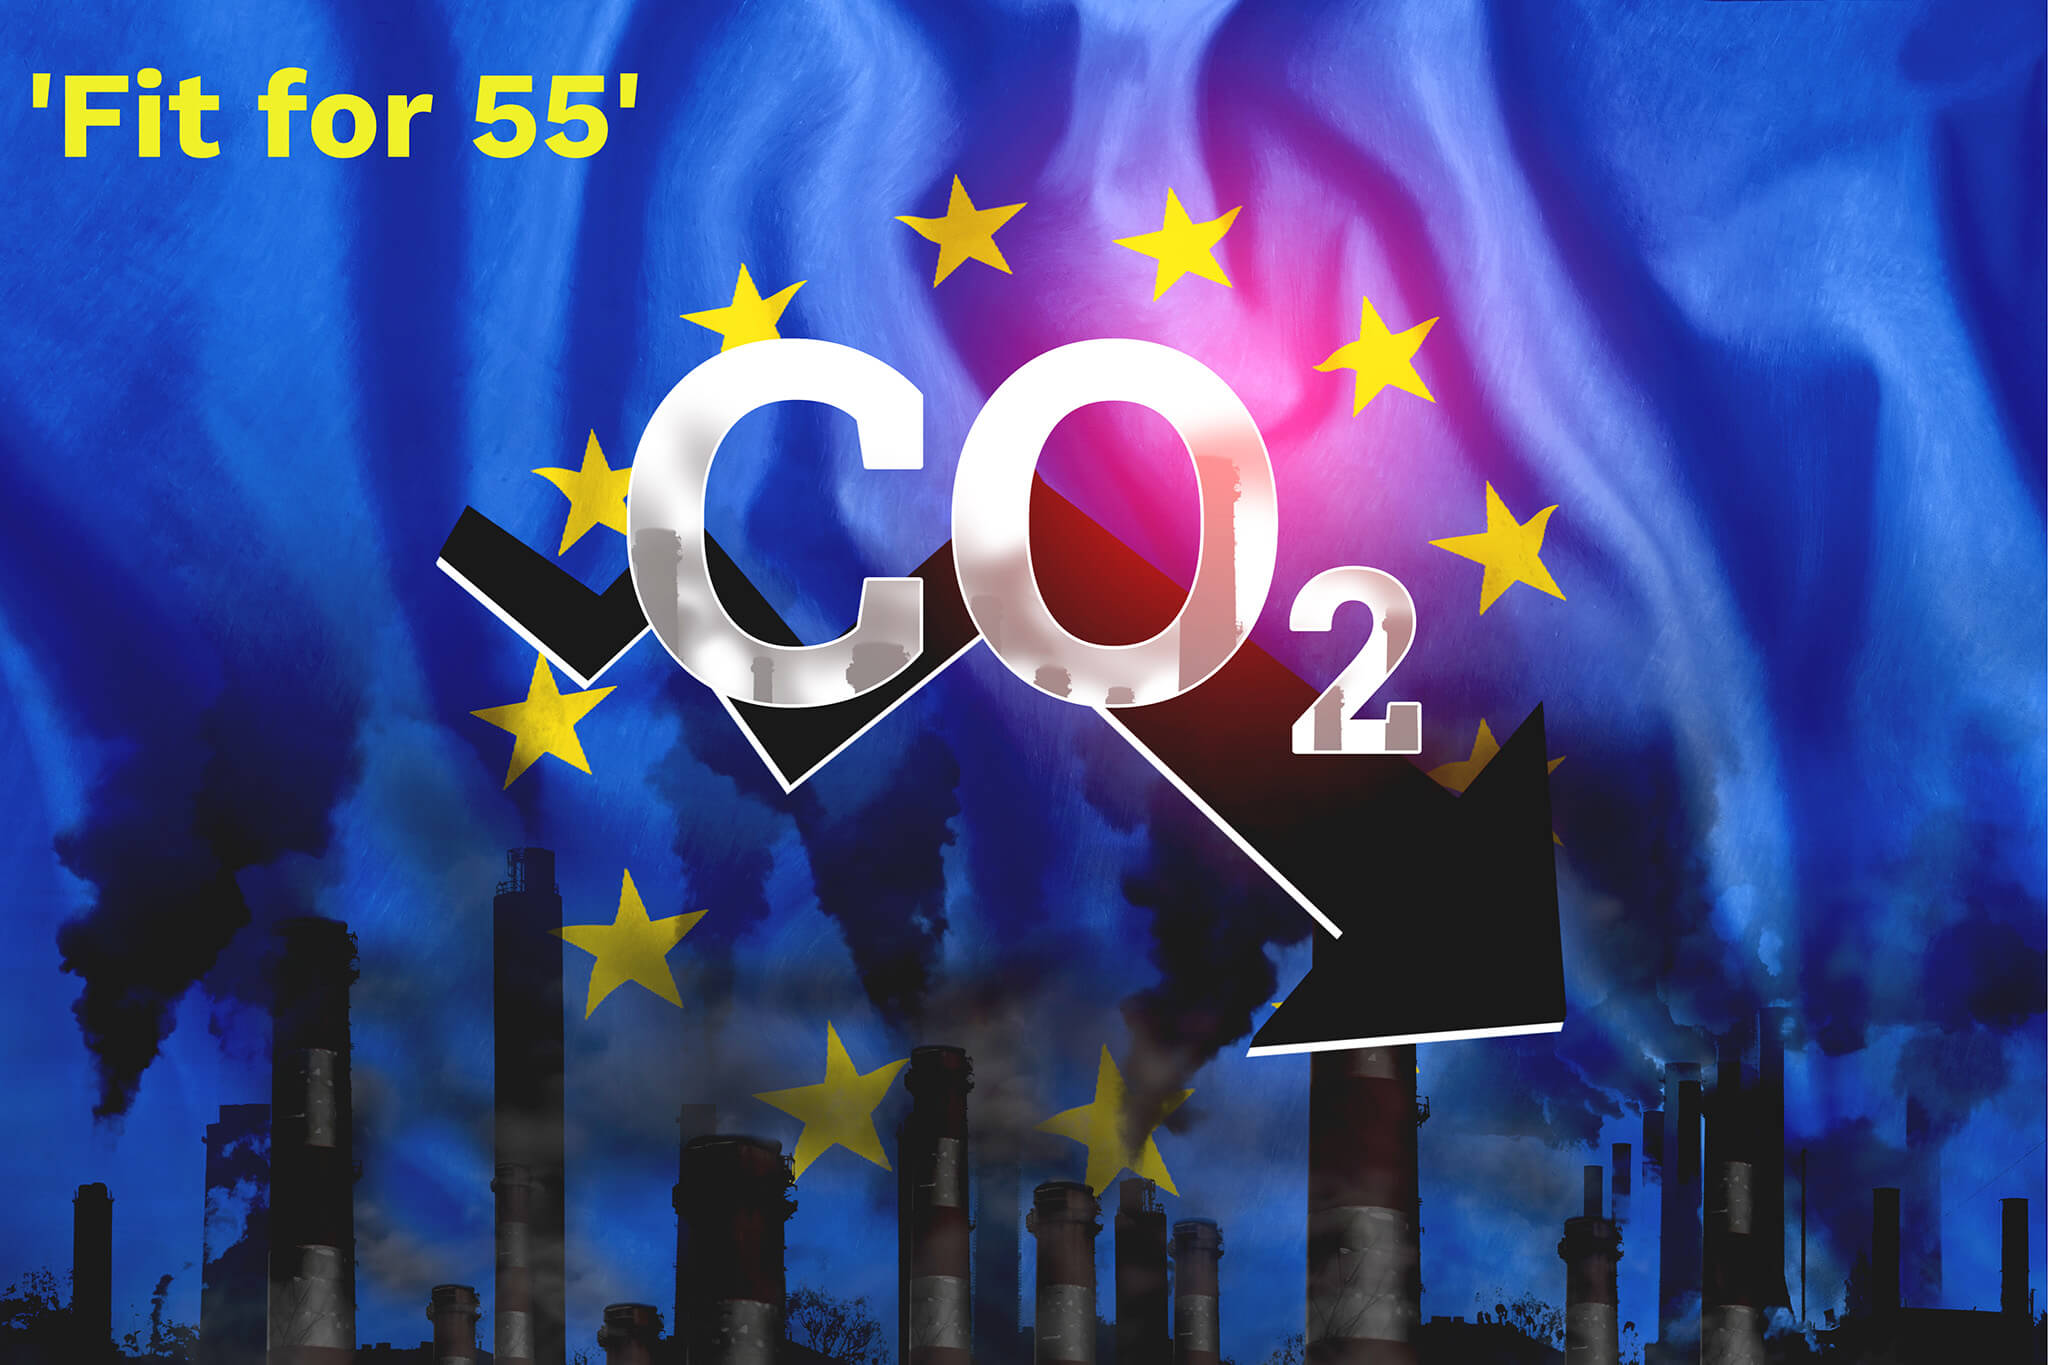 EU FIT FOR 55